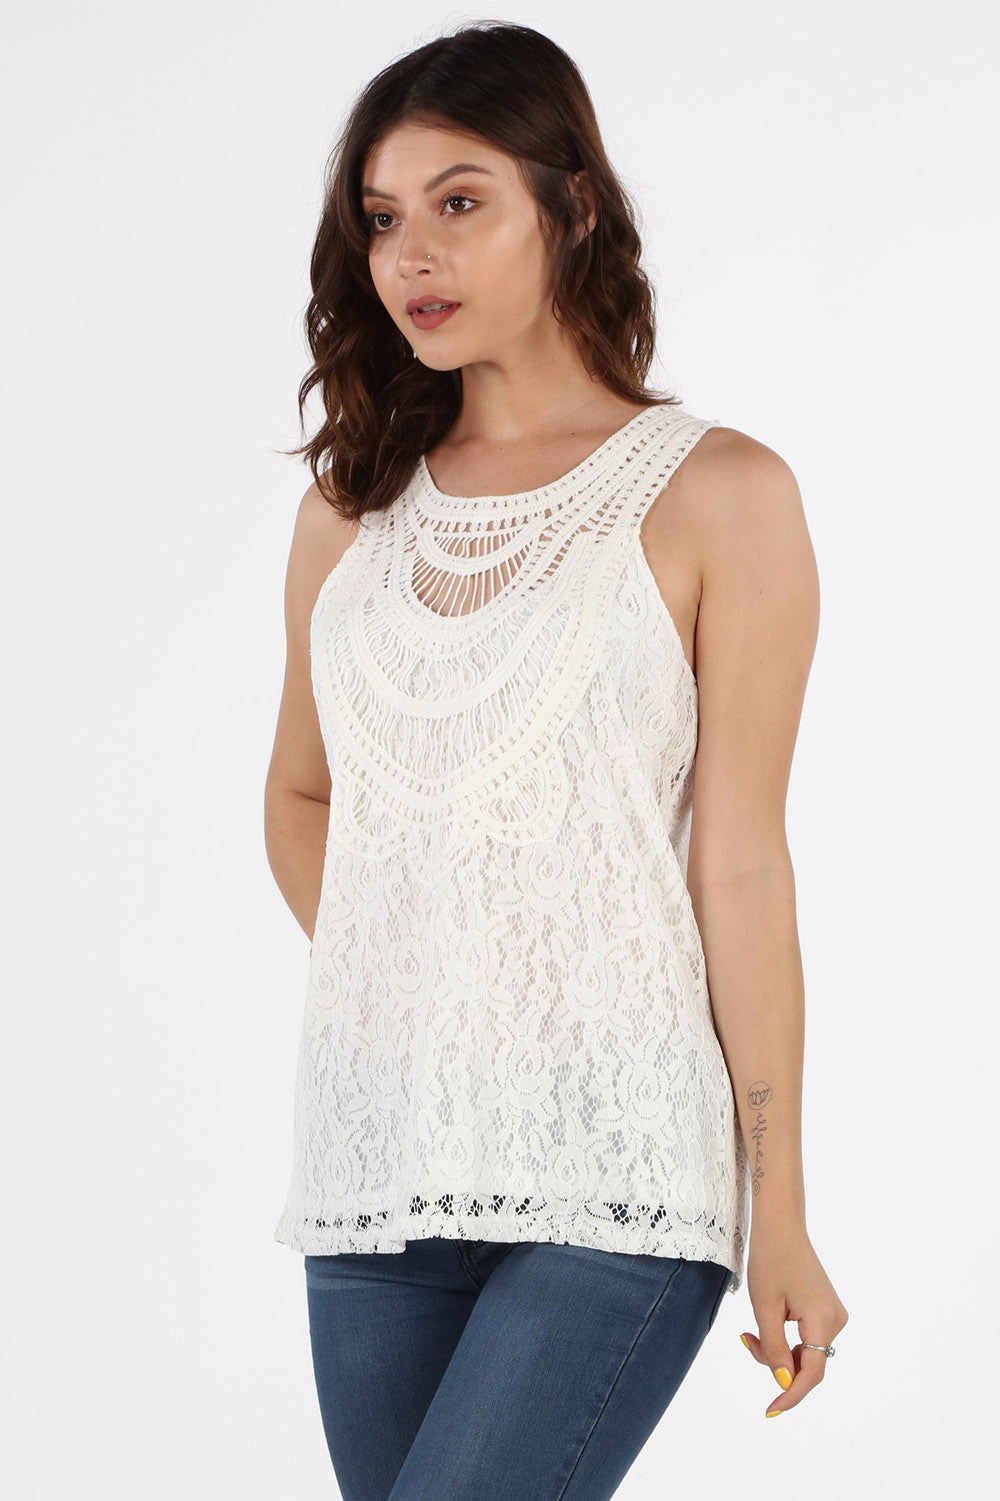 LIV807 White Crochet Blouse